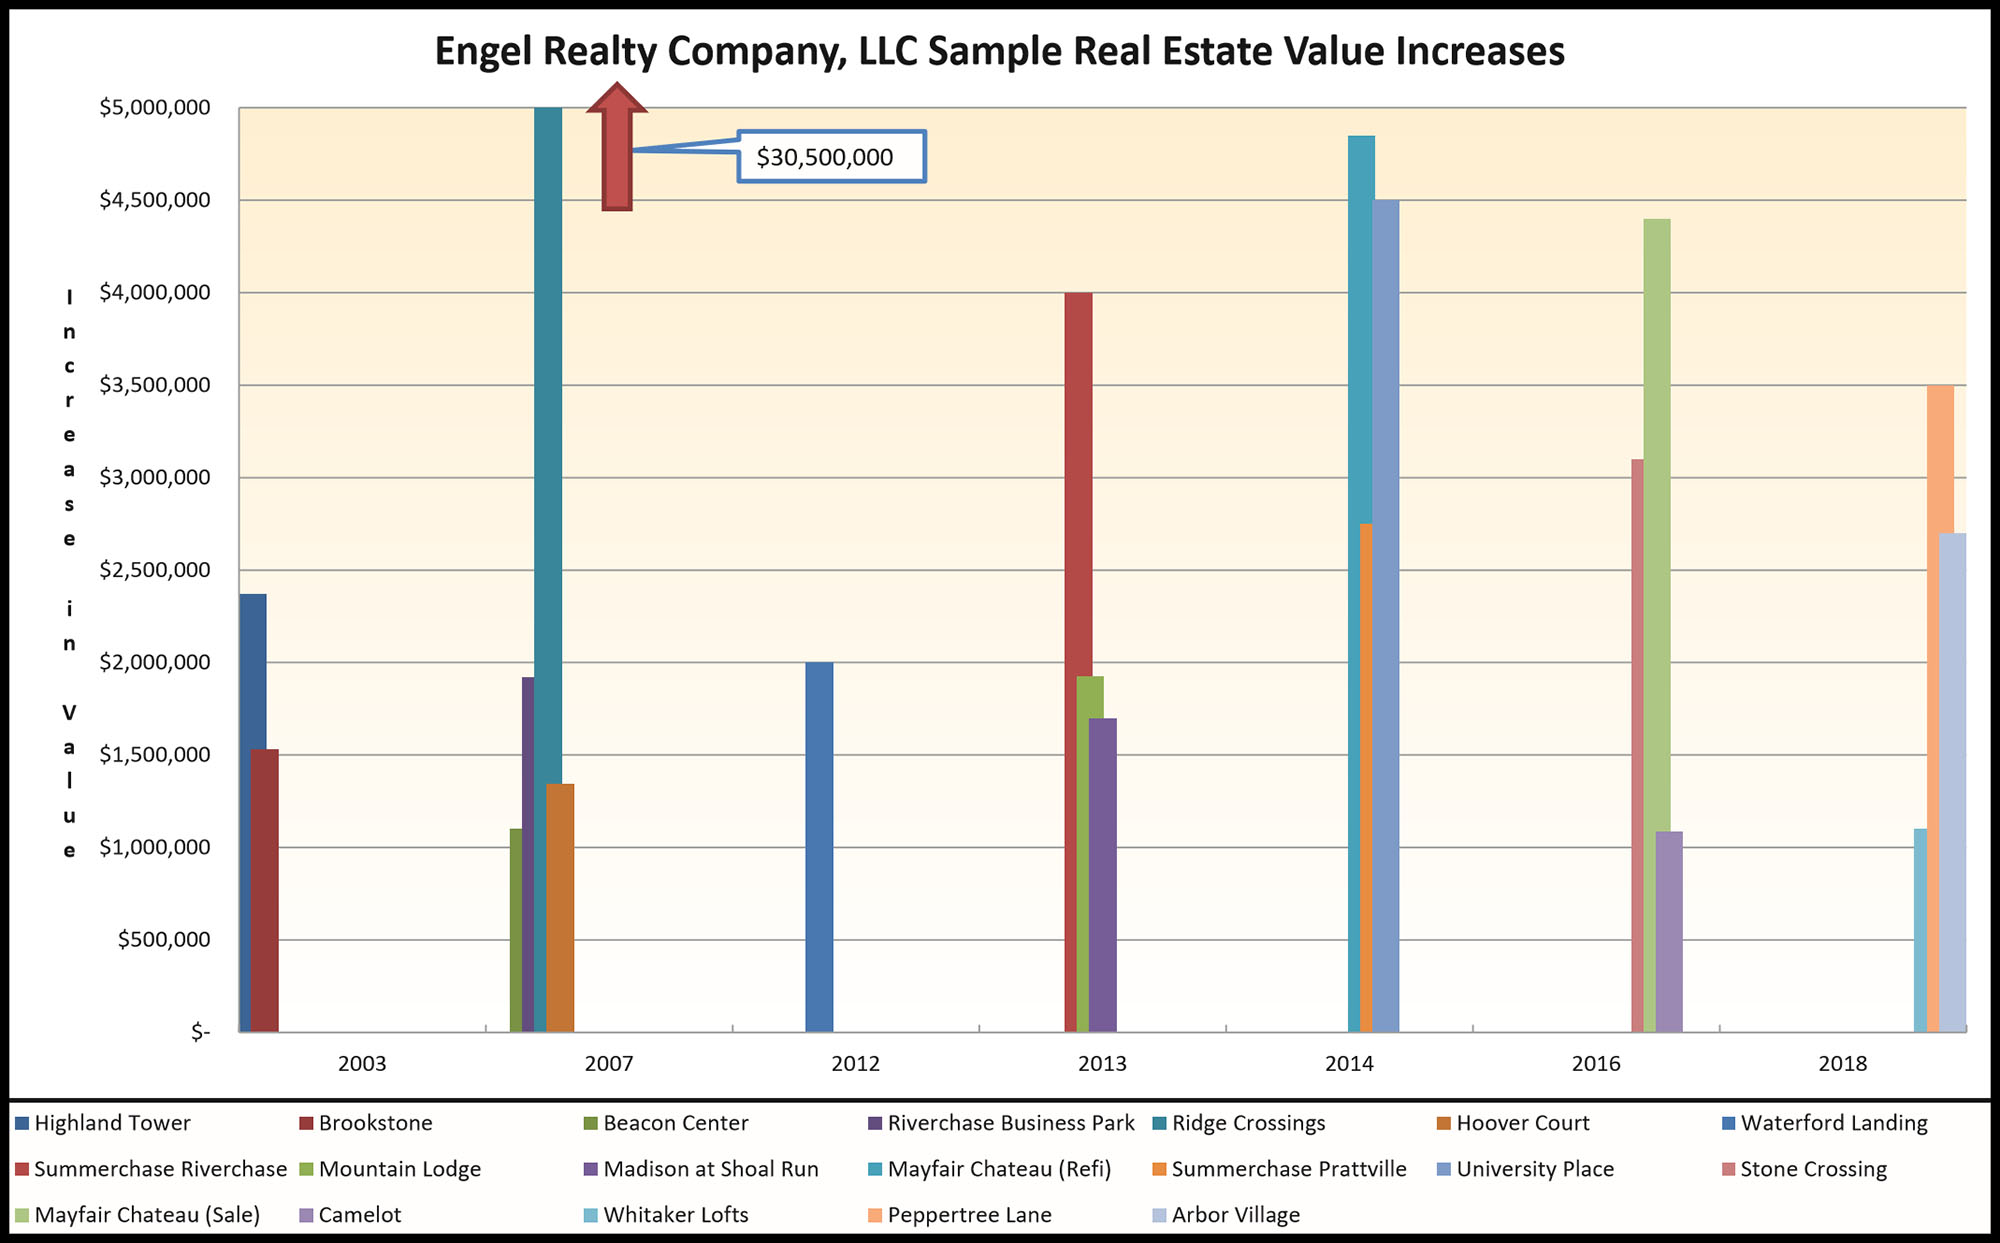 Engel Realty Company, LLC Sample Real Estate Value Increases